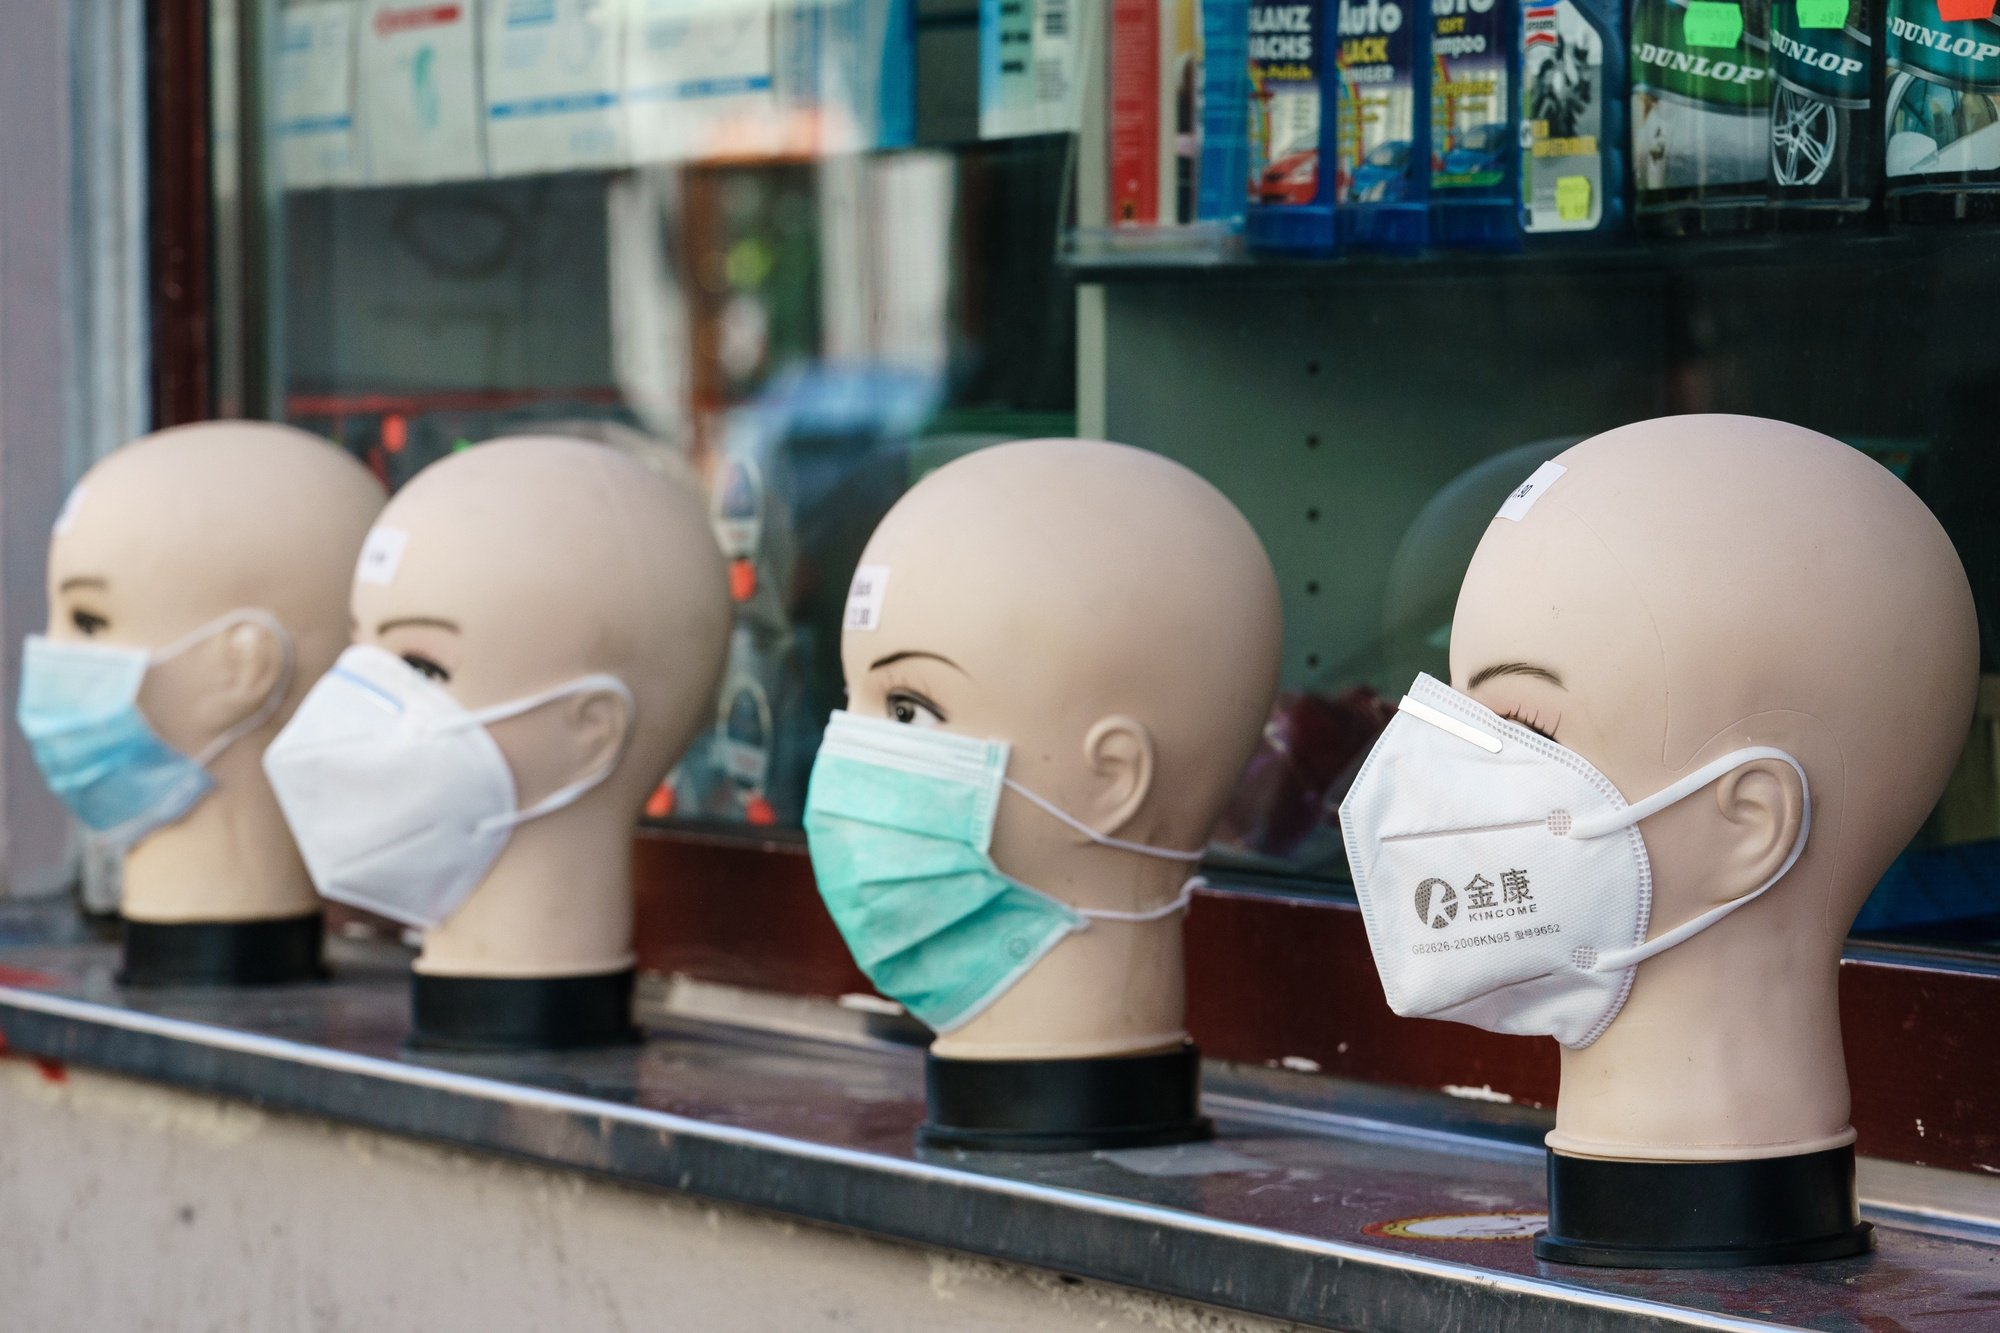 epa08346194 Face masks are on display at a shop in the Berlin district Kreuzberg in Berlin, Germany, 06 April 2020. Due to the ongoing pandemic of the COVID-19 disease caused by the SARS-CoV-2 coronavirus, most of the shops, museums and concert halls in Berlin are closed. Weekly markets, pharmacies, banking institutes, supermarkets, petrol stations and some other shops are still opened. People are allowed to visit parks in gatherings of people containing not more than two persons or as families. Physical training alone is allowed.  EPA/CLEMENS BILAN